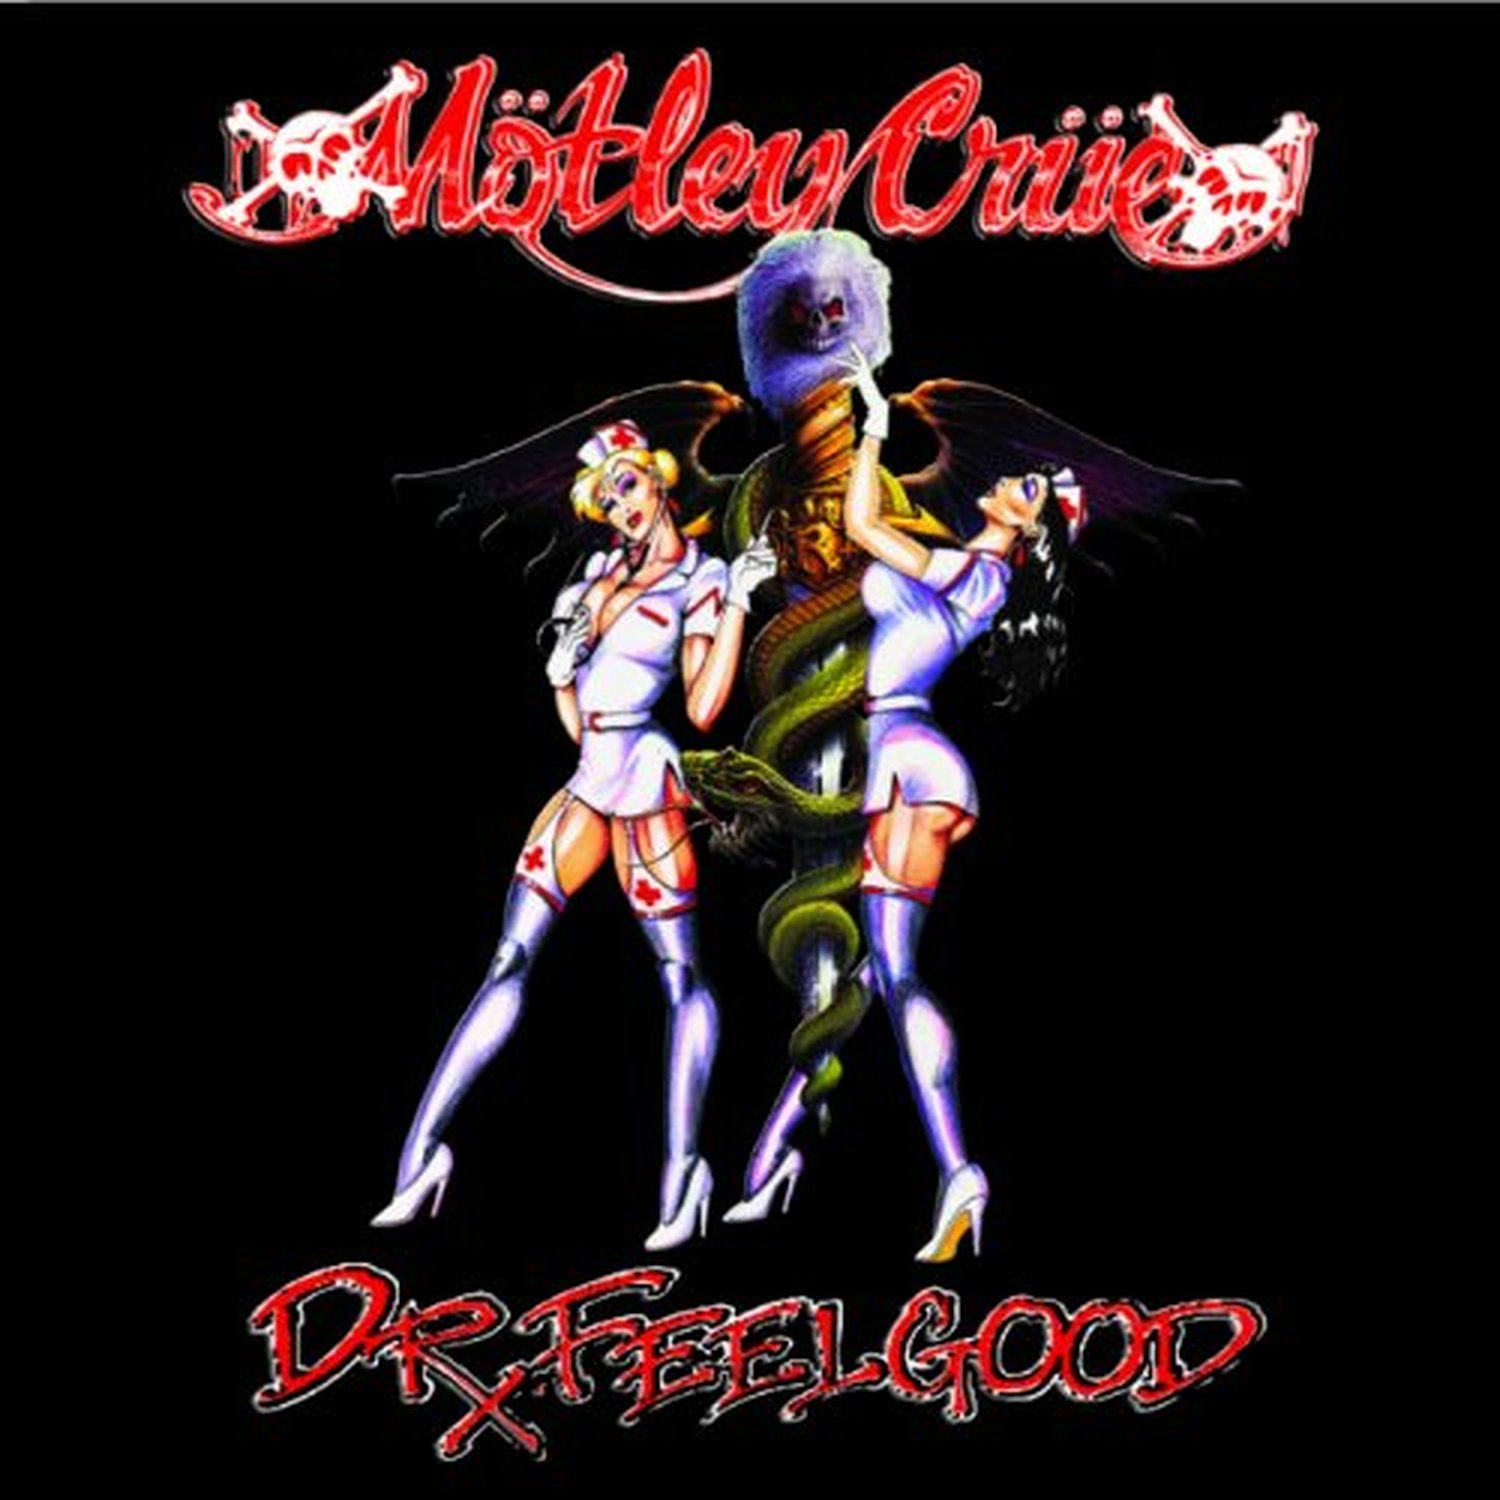 Motley Crue to Release 'Dr. Feelgood' 30th Anniversary ... |Doctor Feel Good Art